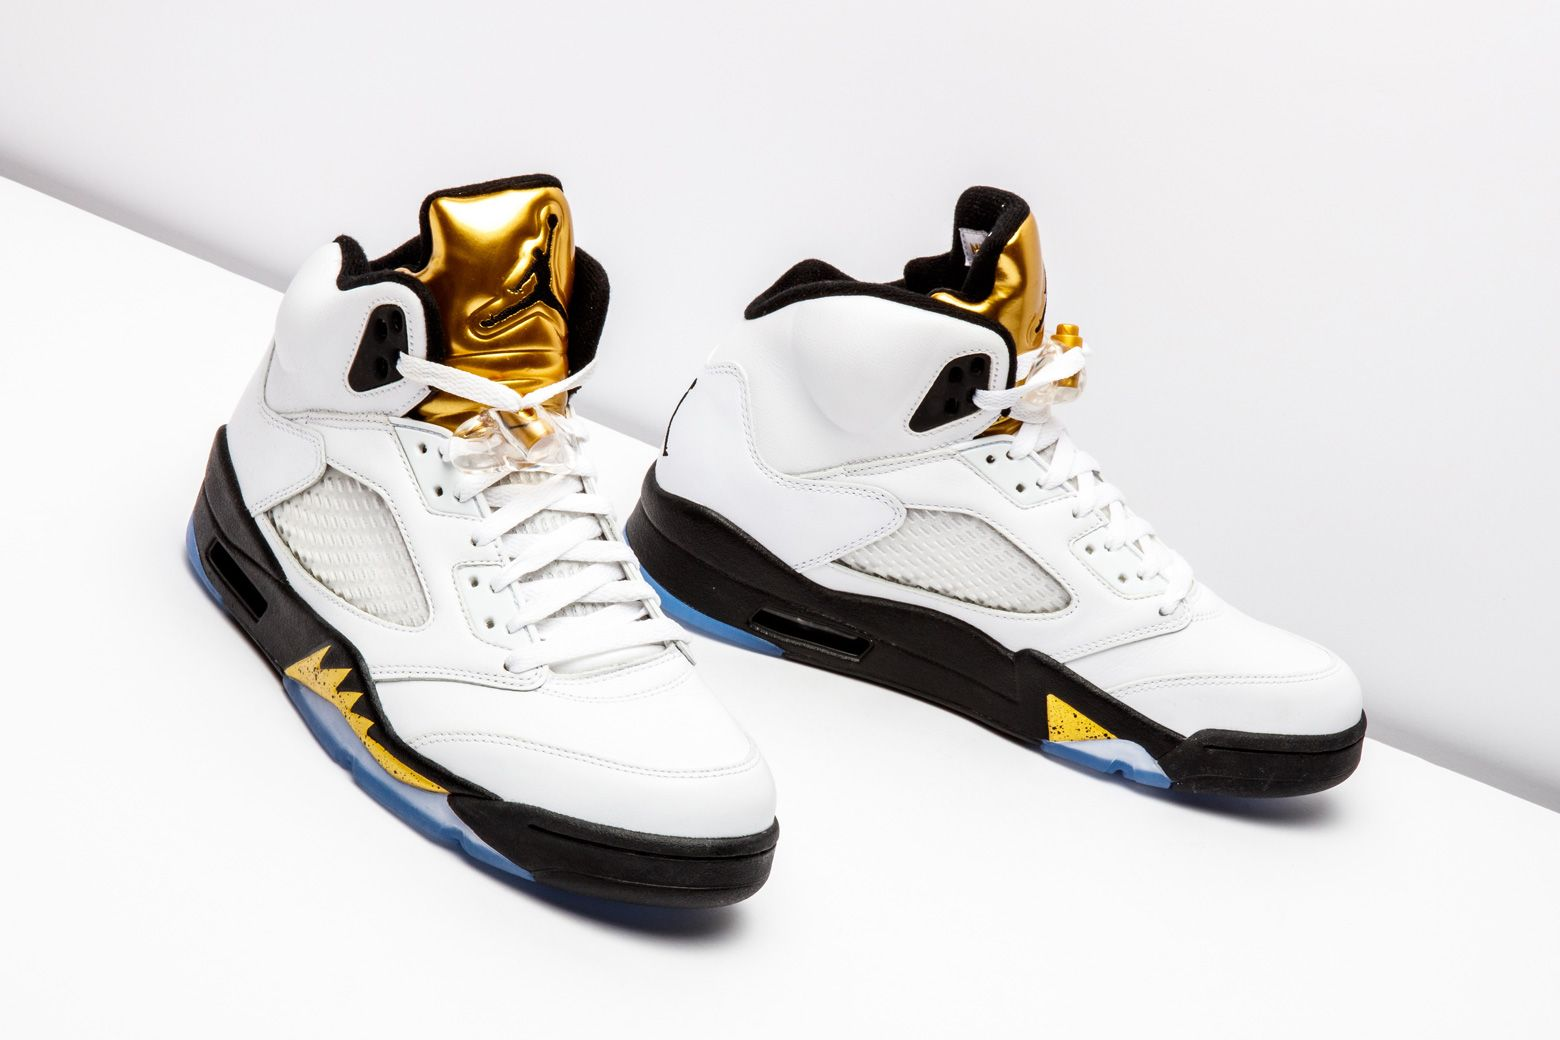 bf940295a58 This Olympic-inspired Air Jordan 5 Retro is memorable because of its  eye-catching gold tongue.